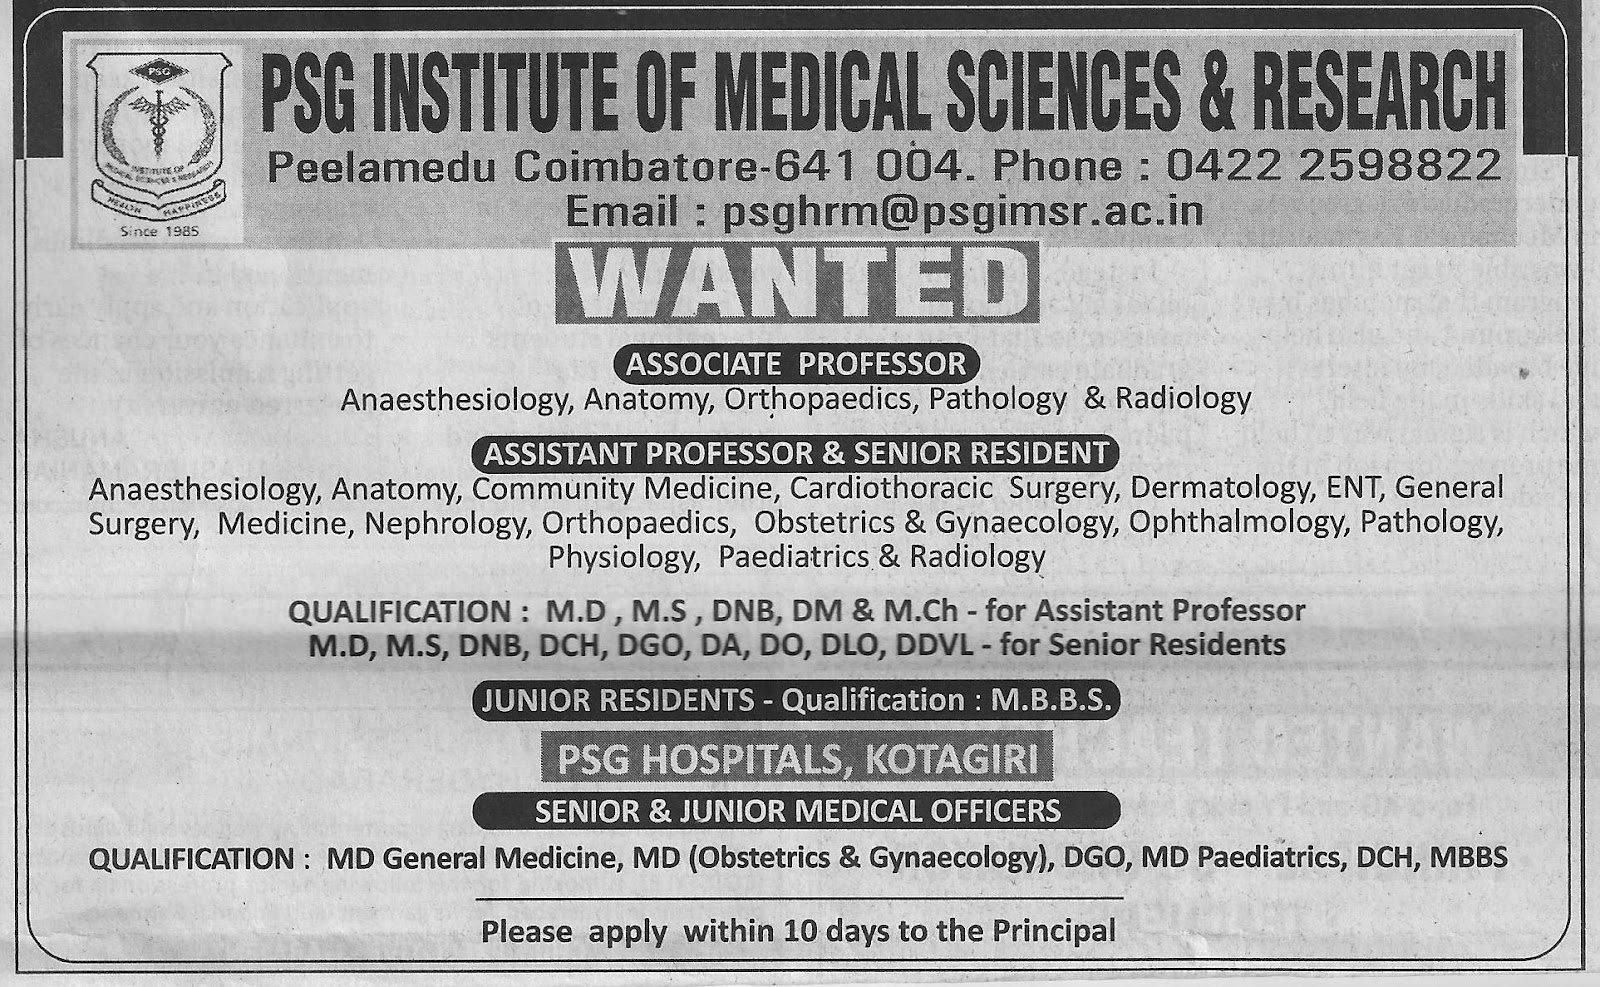 EMPLOYMENT NEWS: PSG INSTITUTE OF MEDICAL SCIENCES & RESEARCH ...